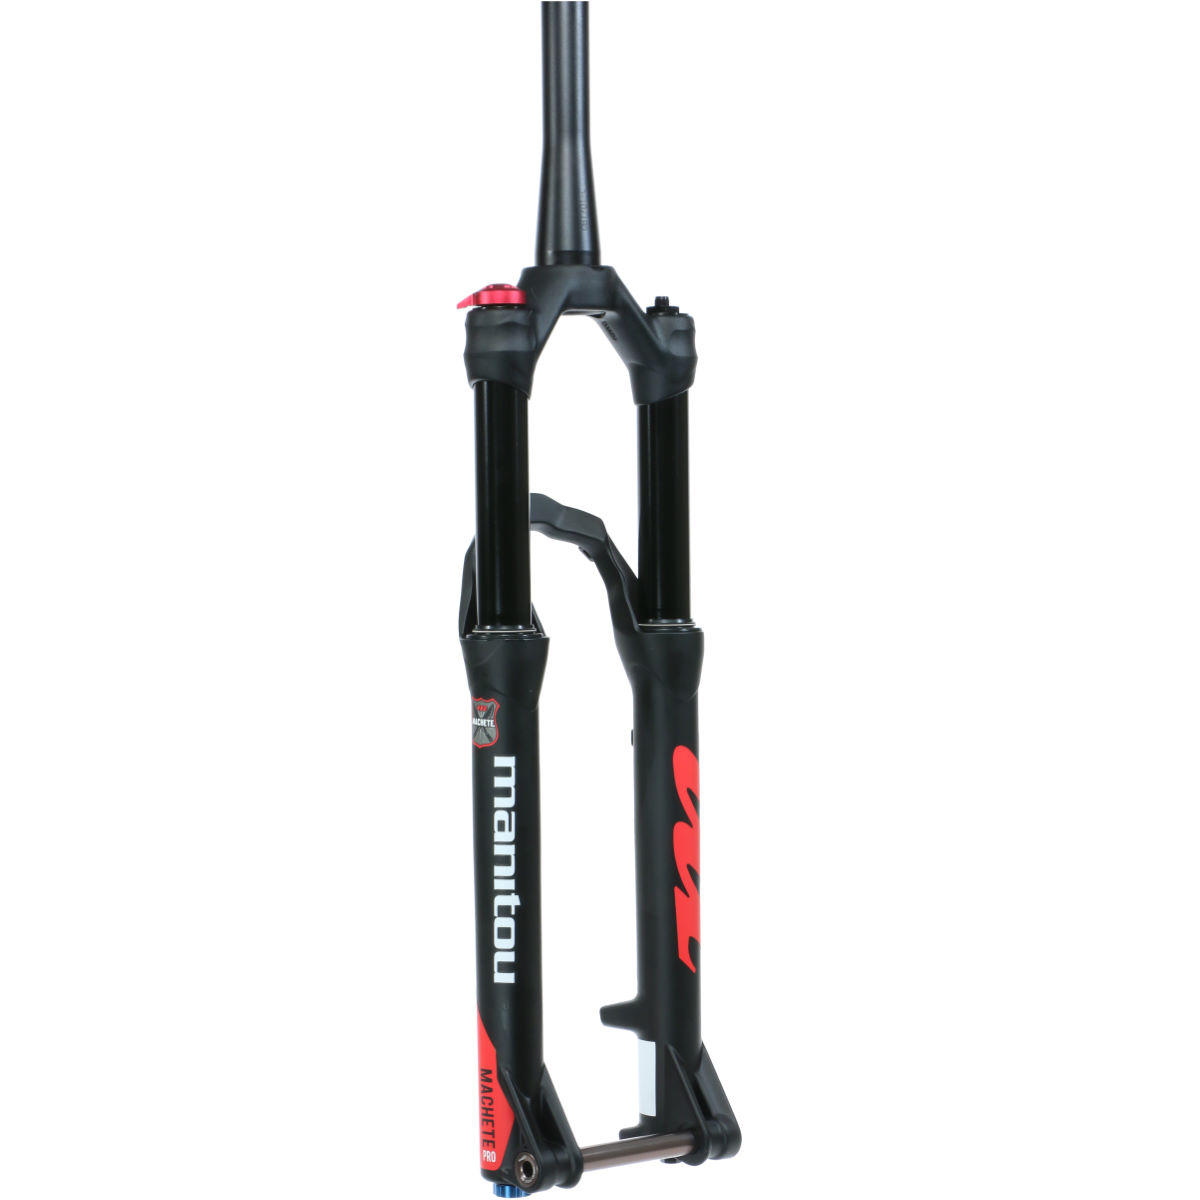 Manitou Manitou Machete Pro Forks - 15mm Axle   Suspension Forks